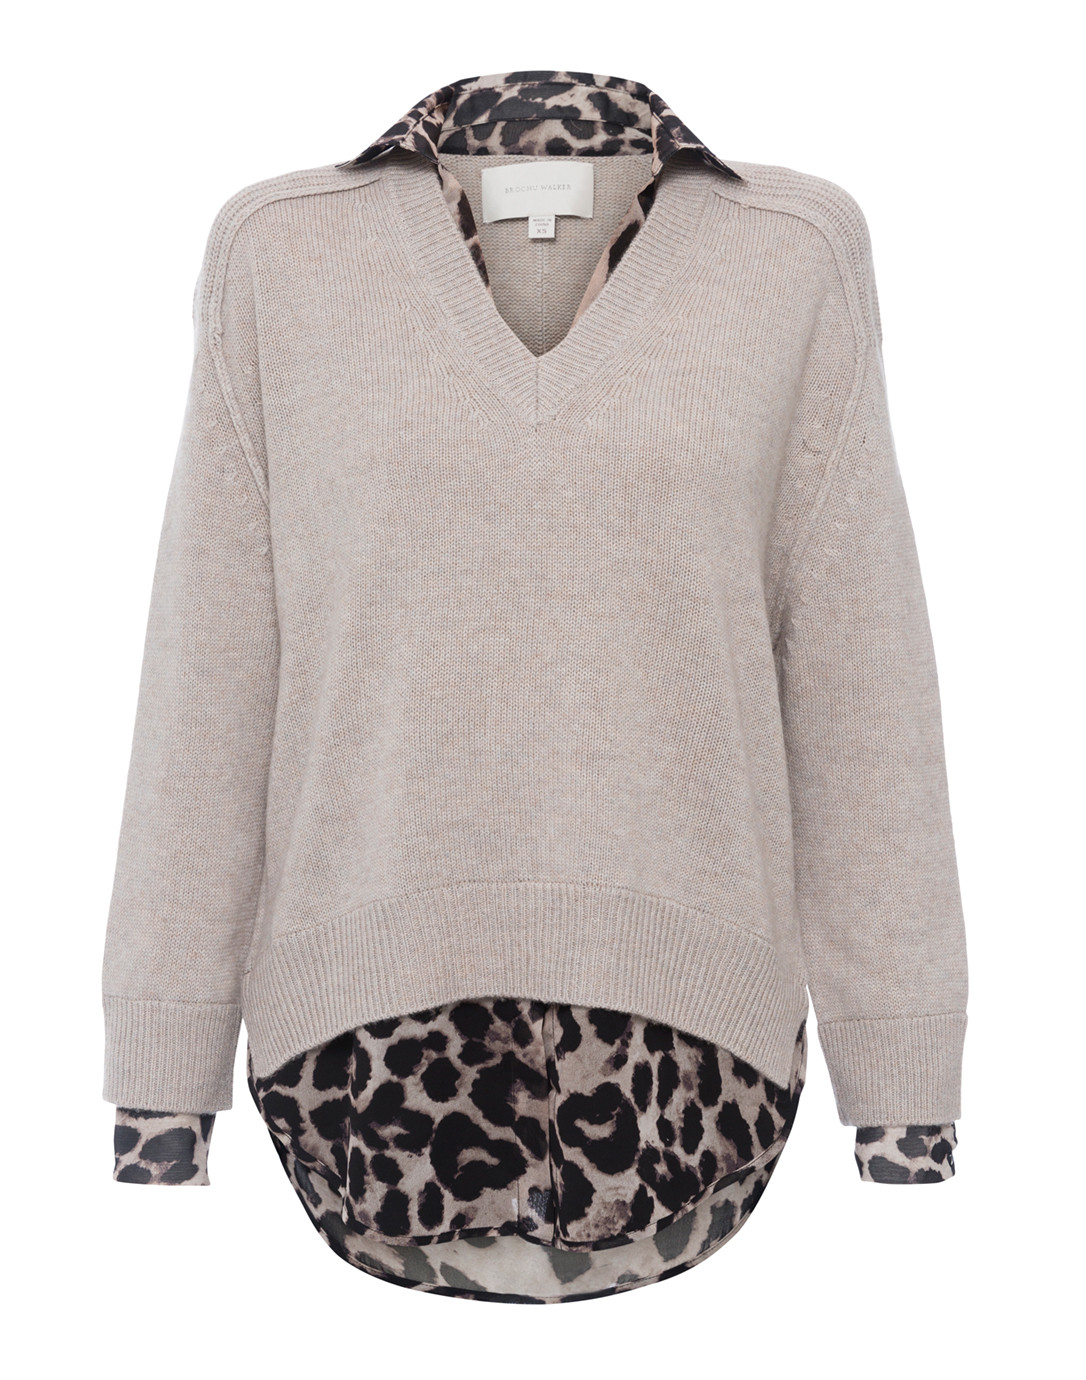 08823edee37 Details  Size and Fit. This beige sweater is an animal printed update to Brochu  Walker s signature layered looker.